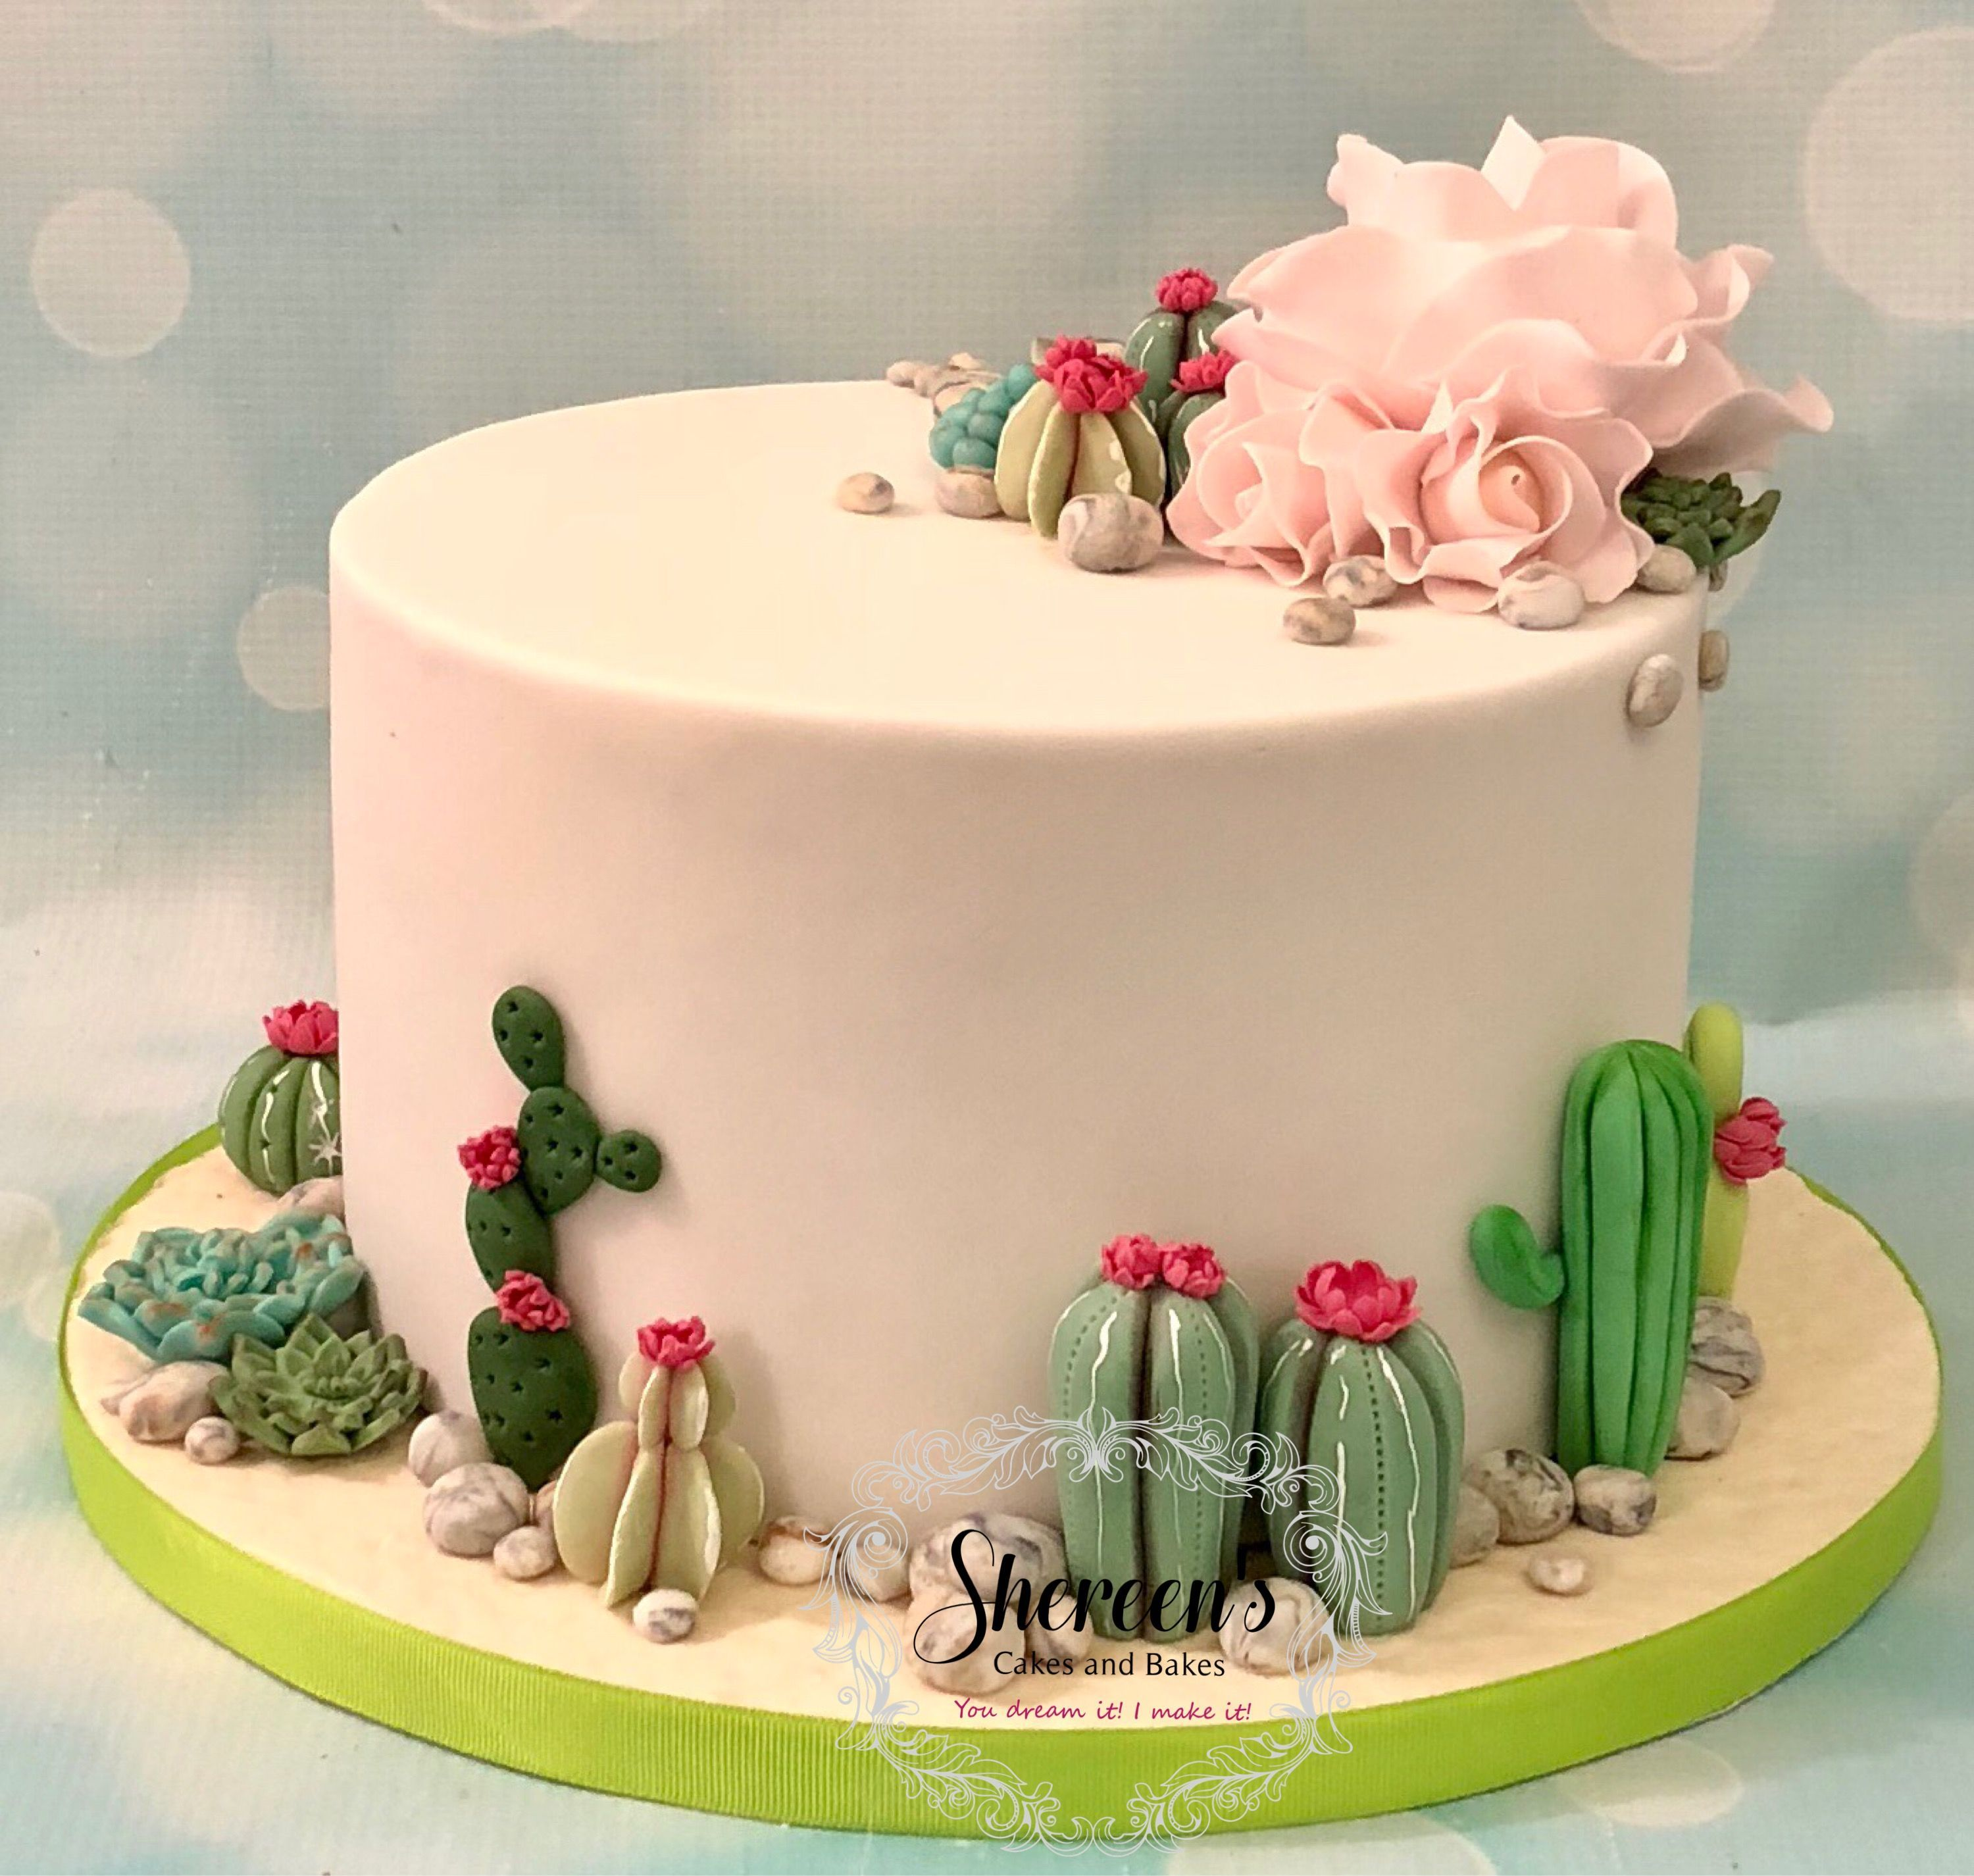 Cactus Cacti Birthday Cake With Flowers And Roses All